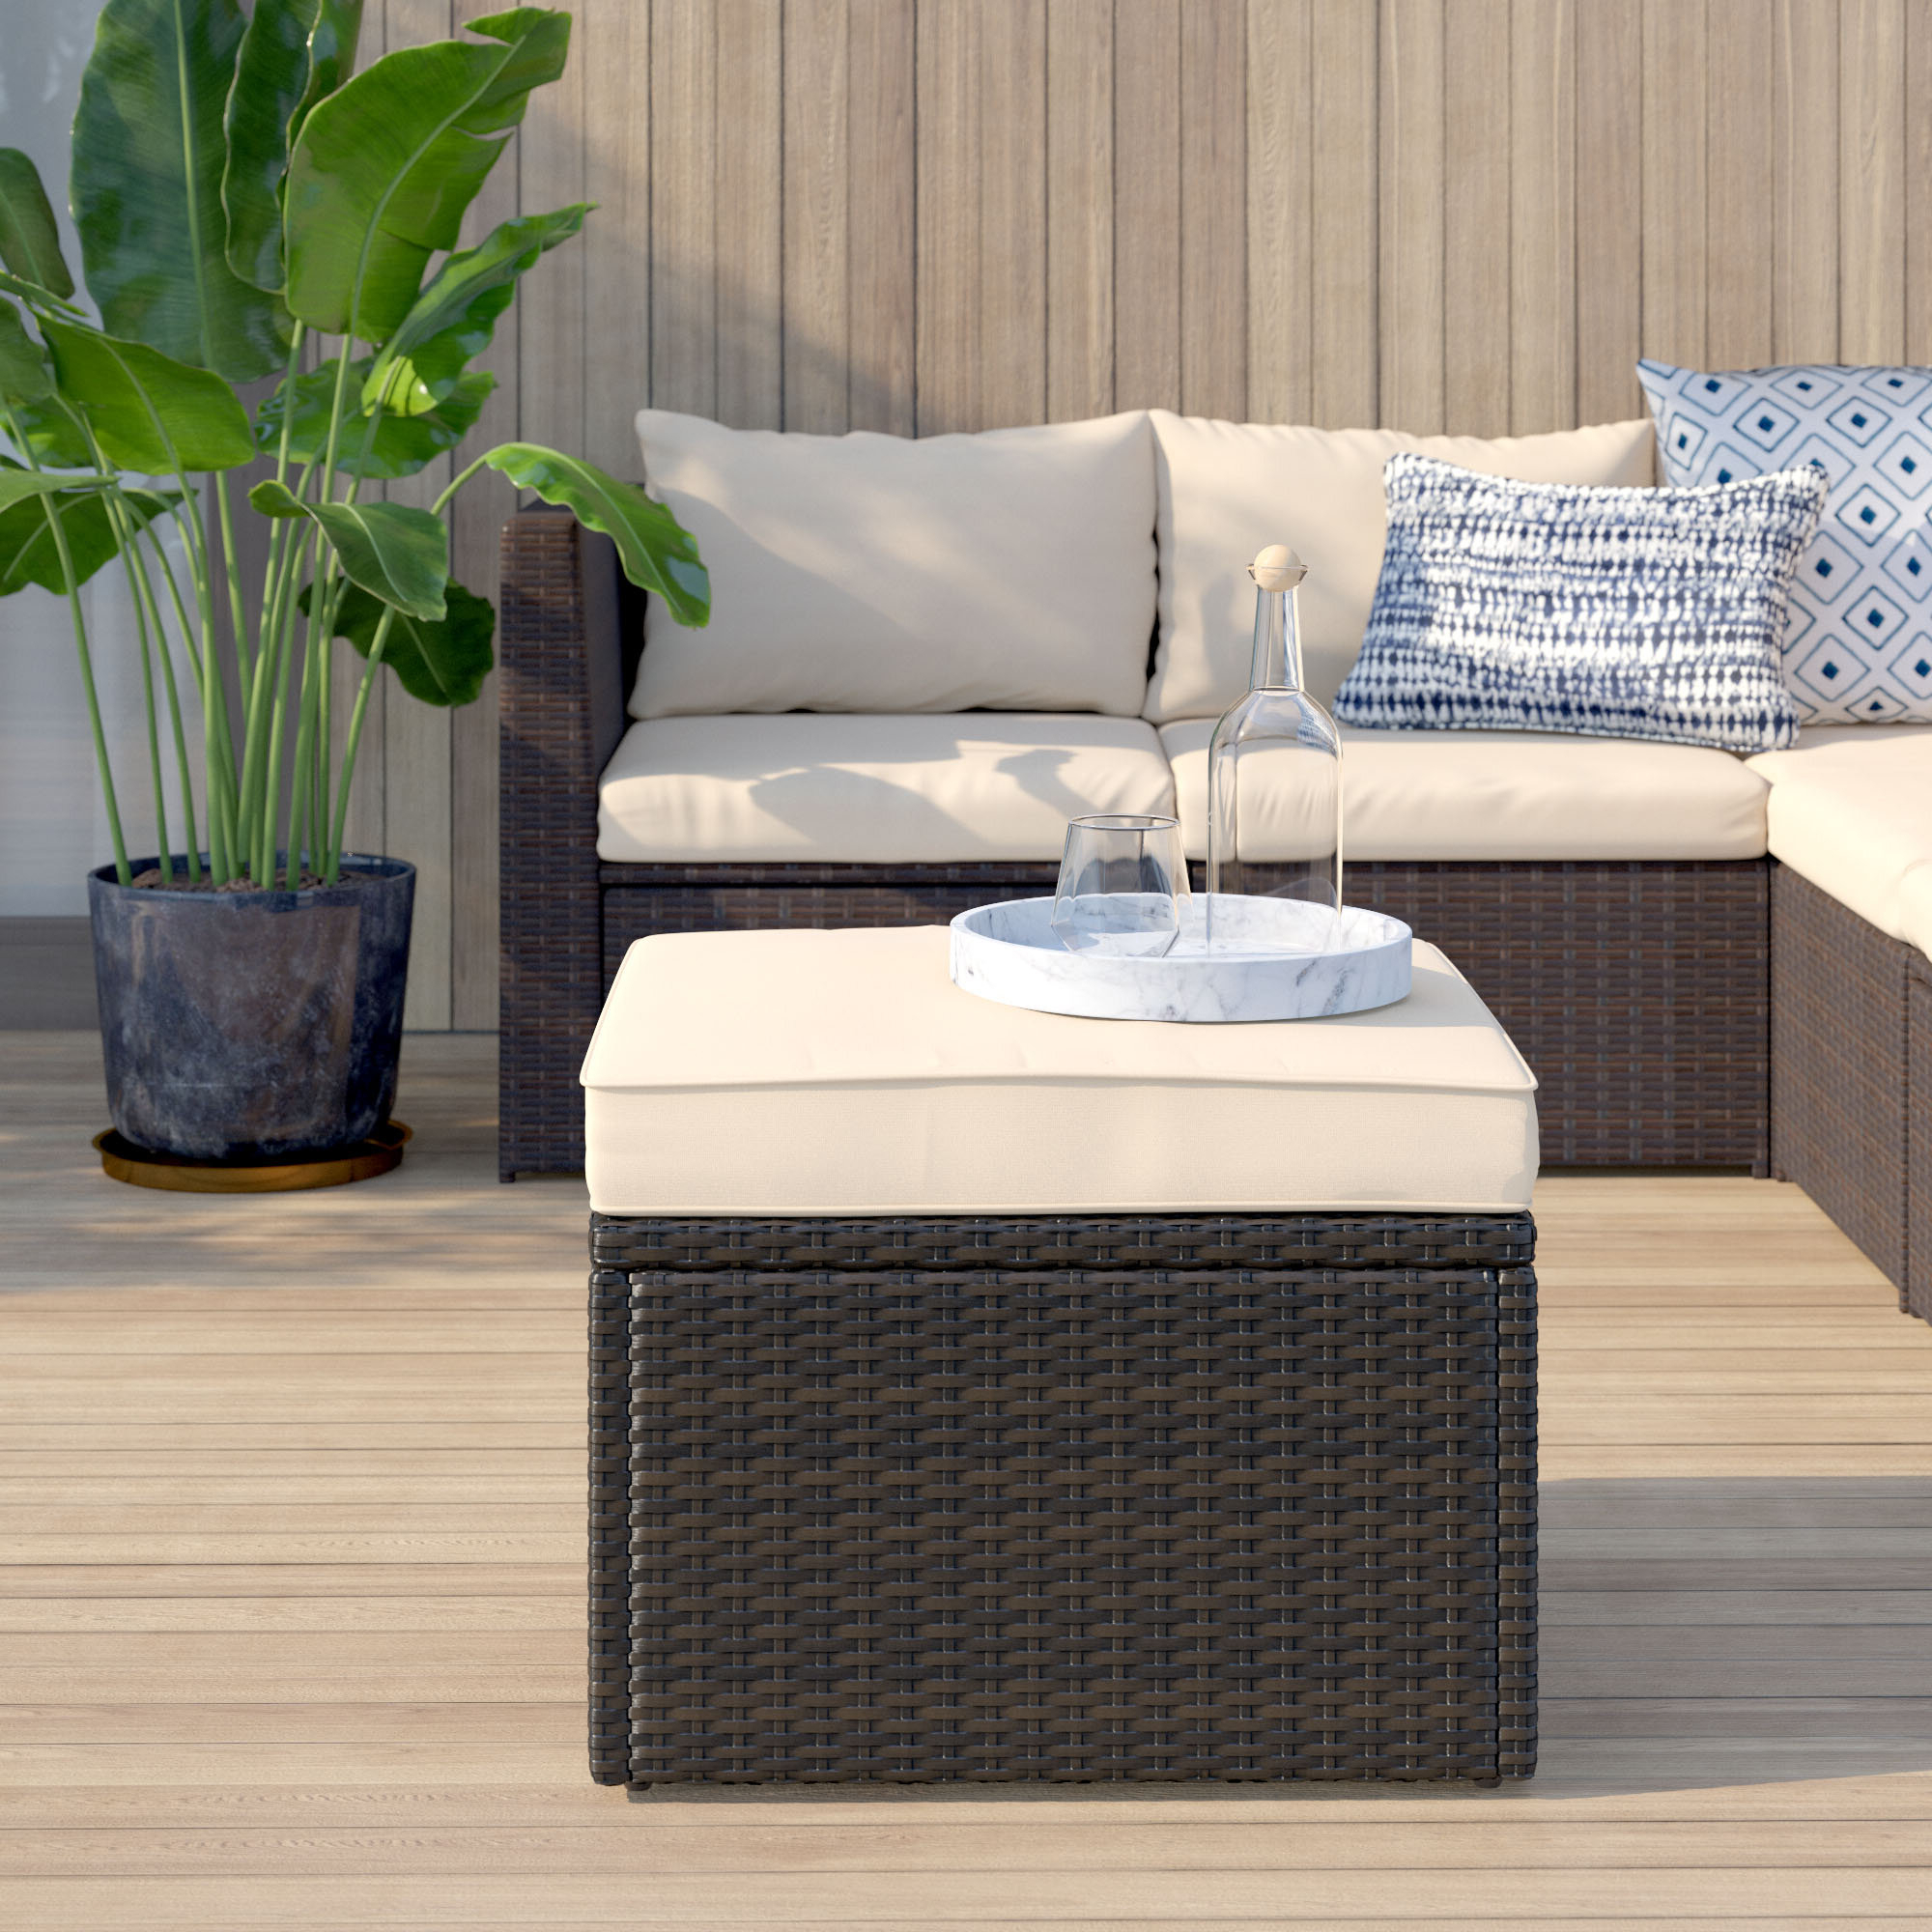 Widely Used Belton Patio Sofas With Cushions In Mercury Row Belton Outdoor Ottoman With Cushion & Reviews (View 22 of 25)